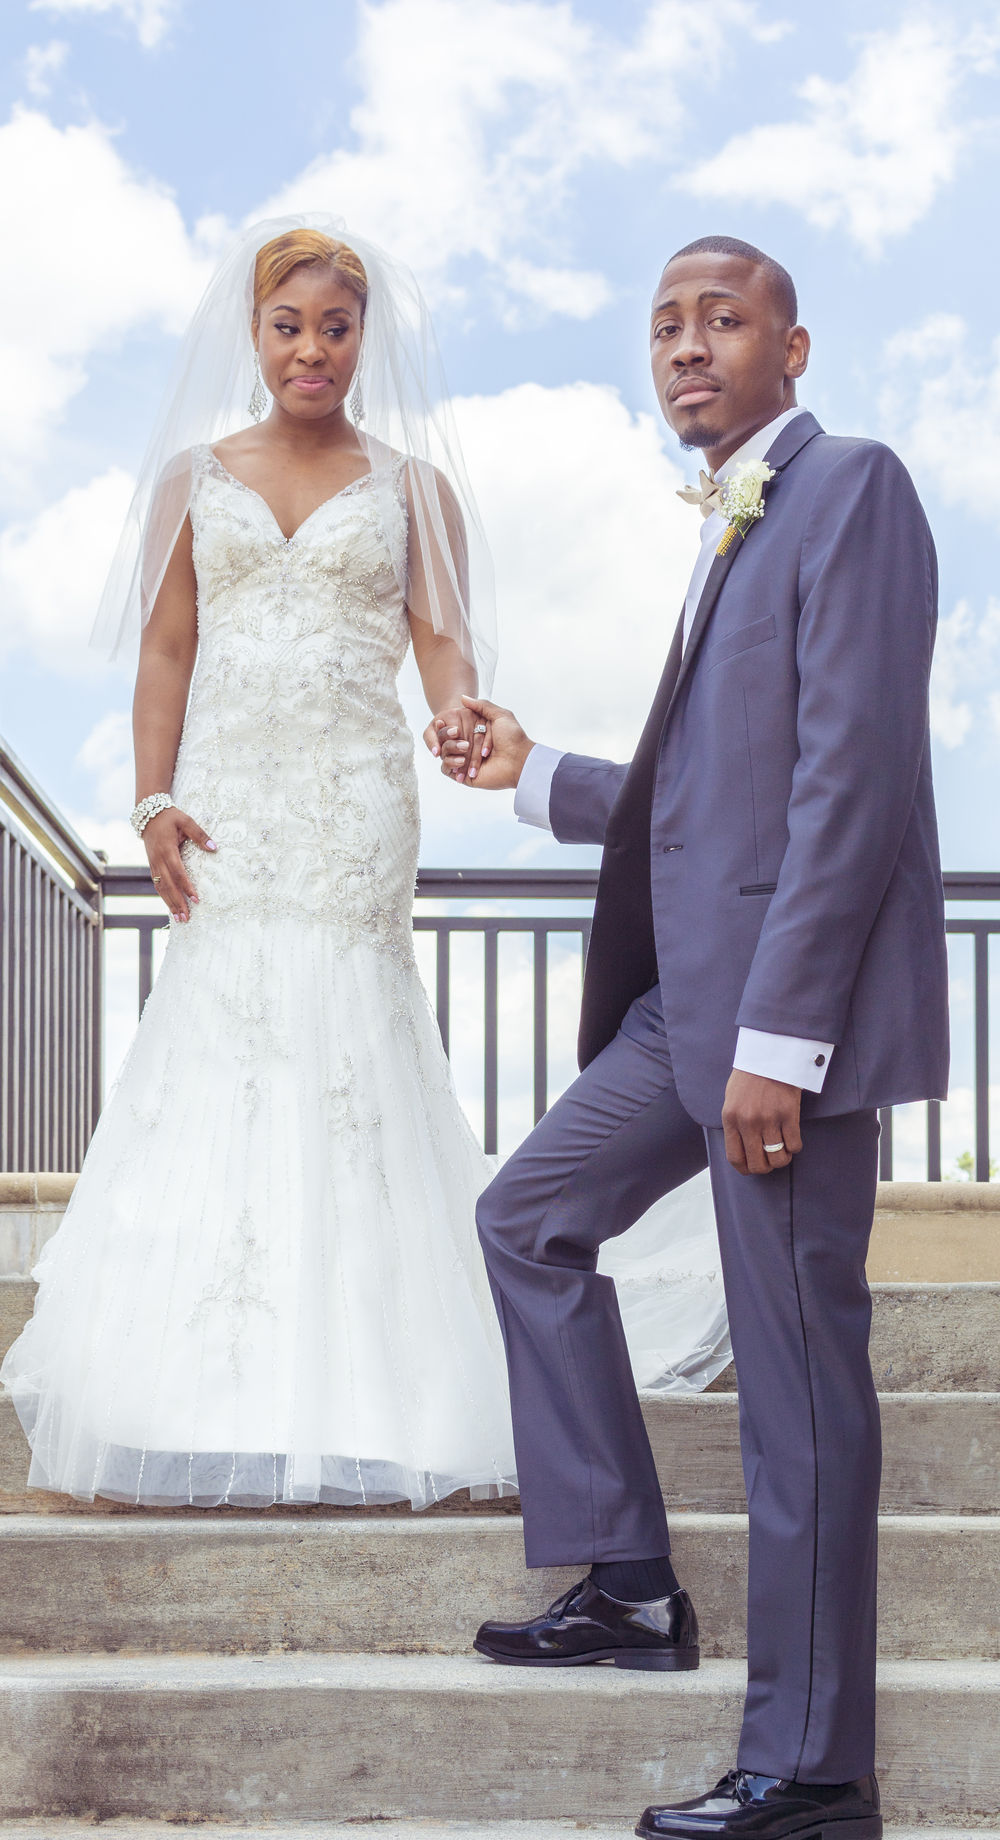 MOORE-BIVENS WEDDING 2015-241-3.jpg